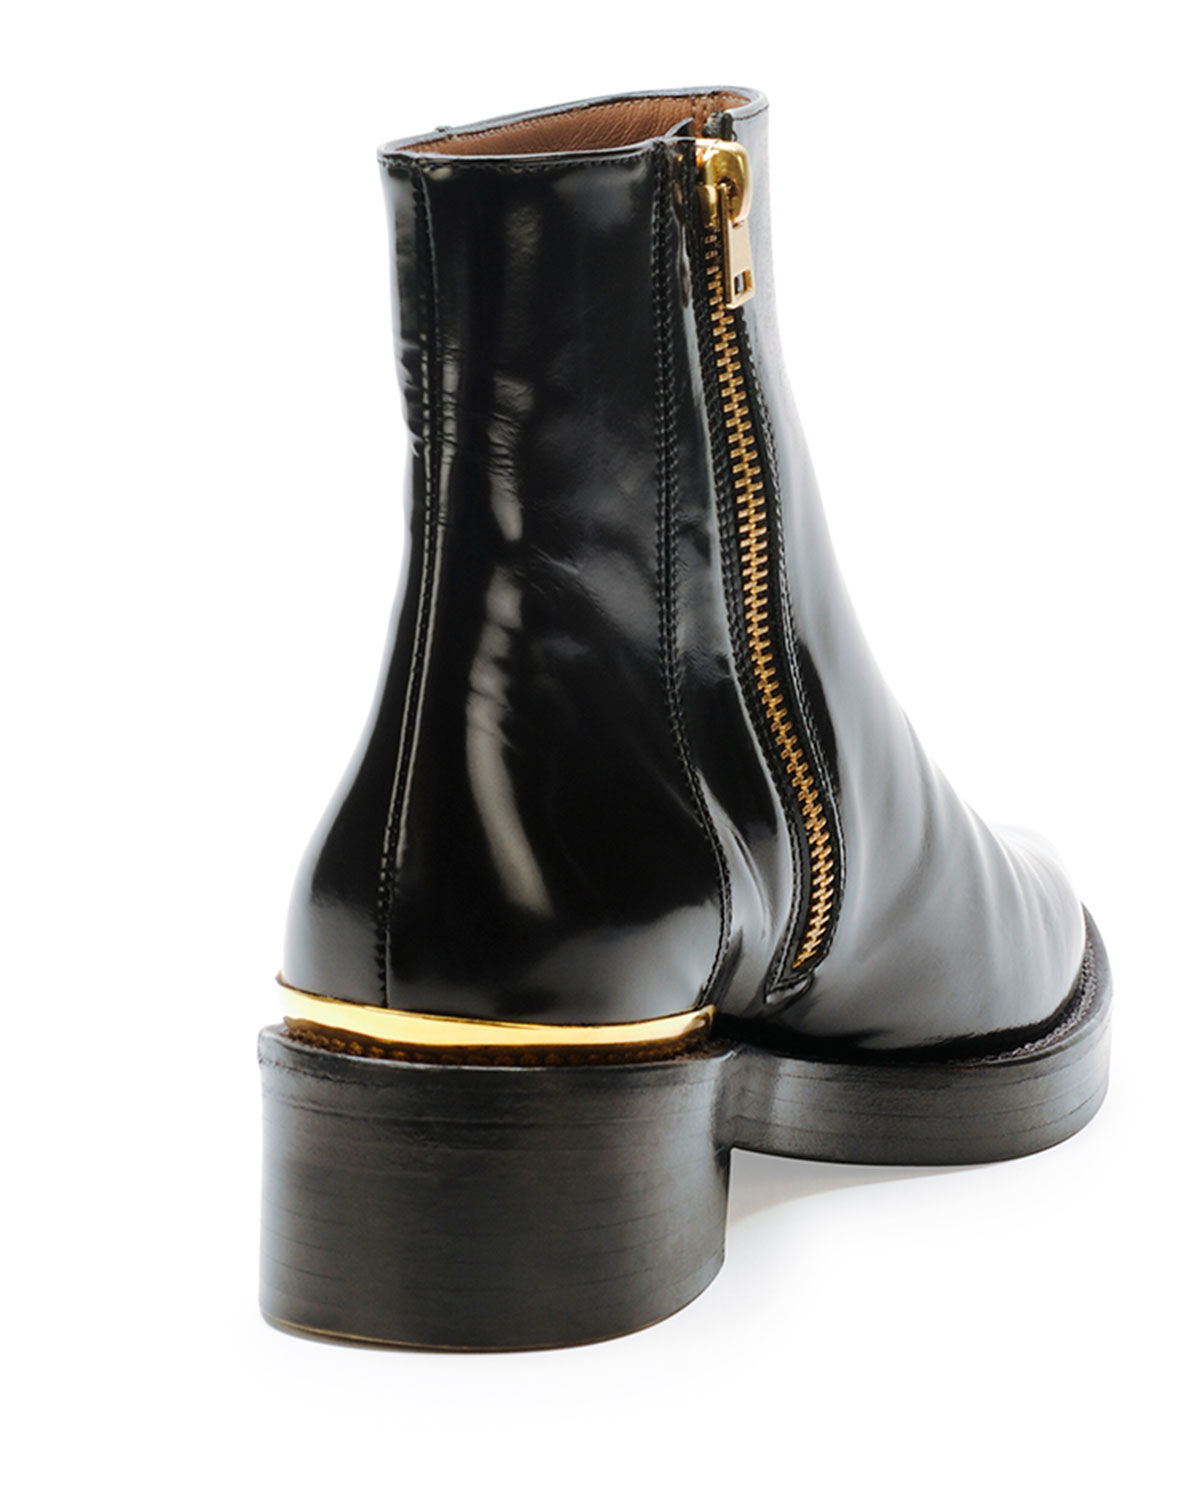 Get To Buy For Sale Marni Western Boots Reliable Limit Offer Cheap i4aIGNI